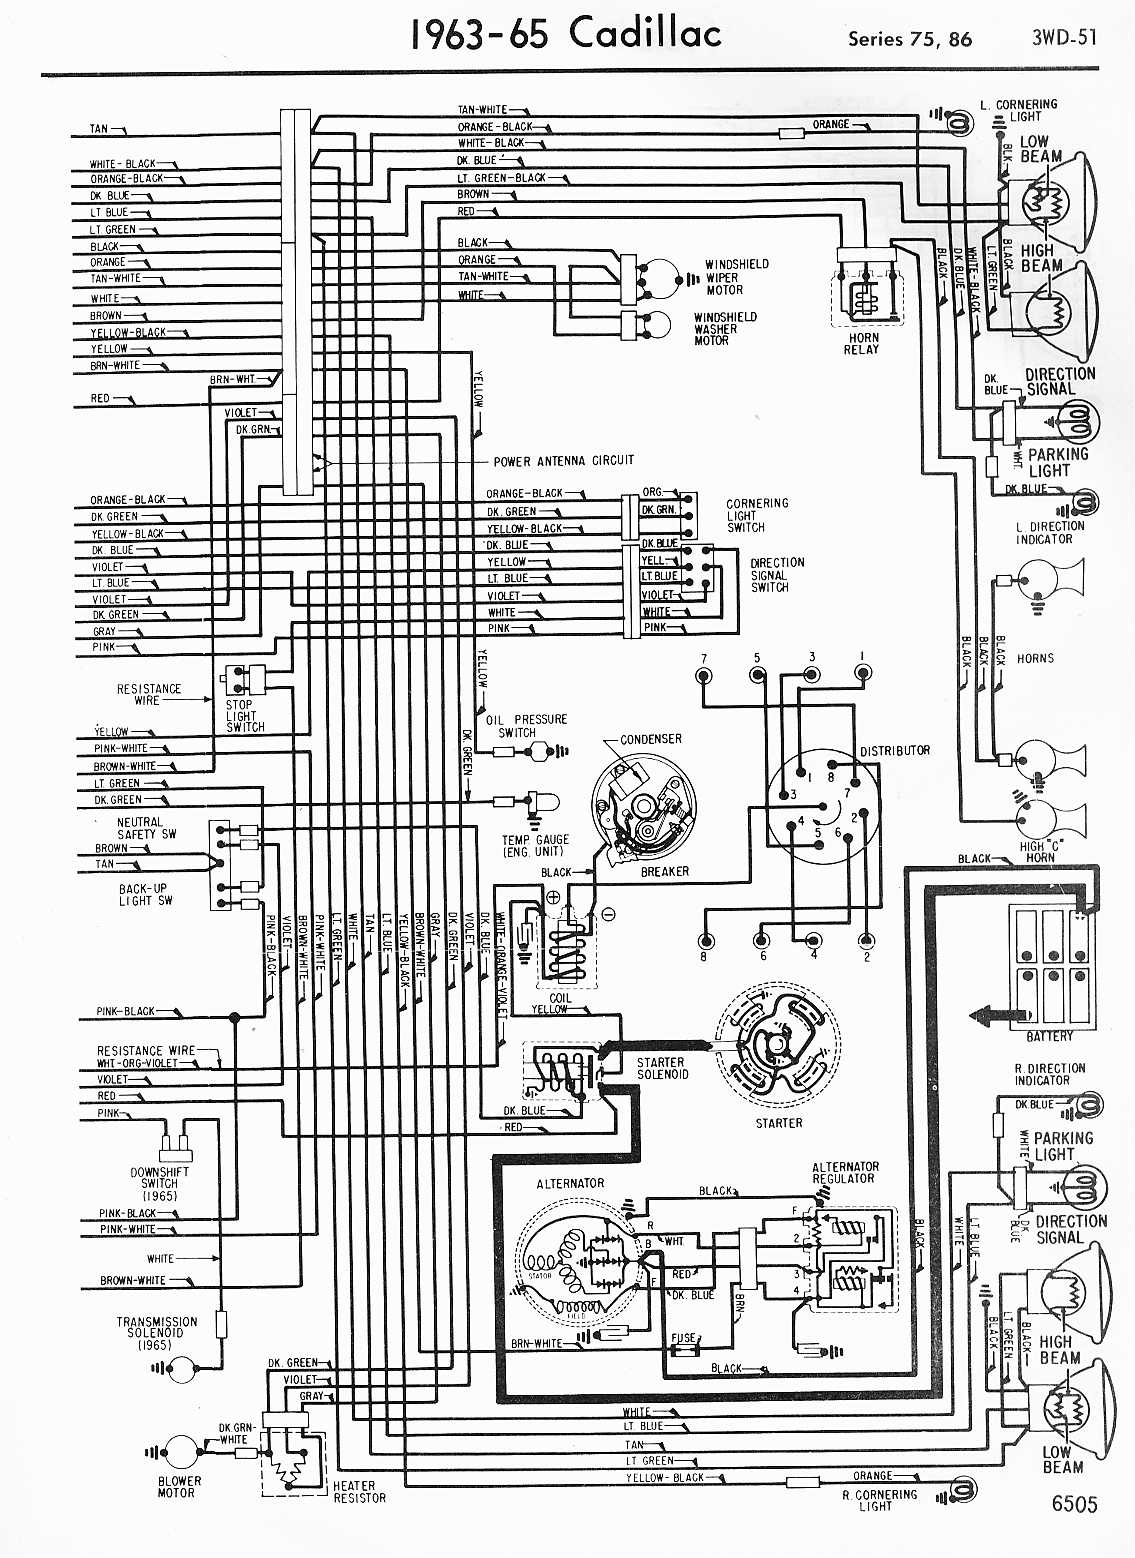 MWireCadi65_3WD 051 1999 cadillac deville starter wiring wiring diagram simonand cadillac wiring harness 2016 ats at nearapp.co